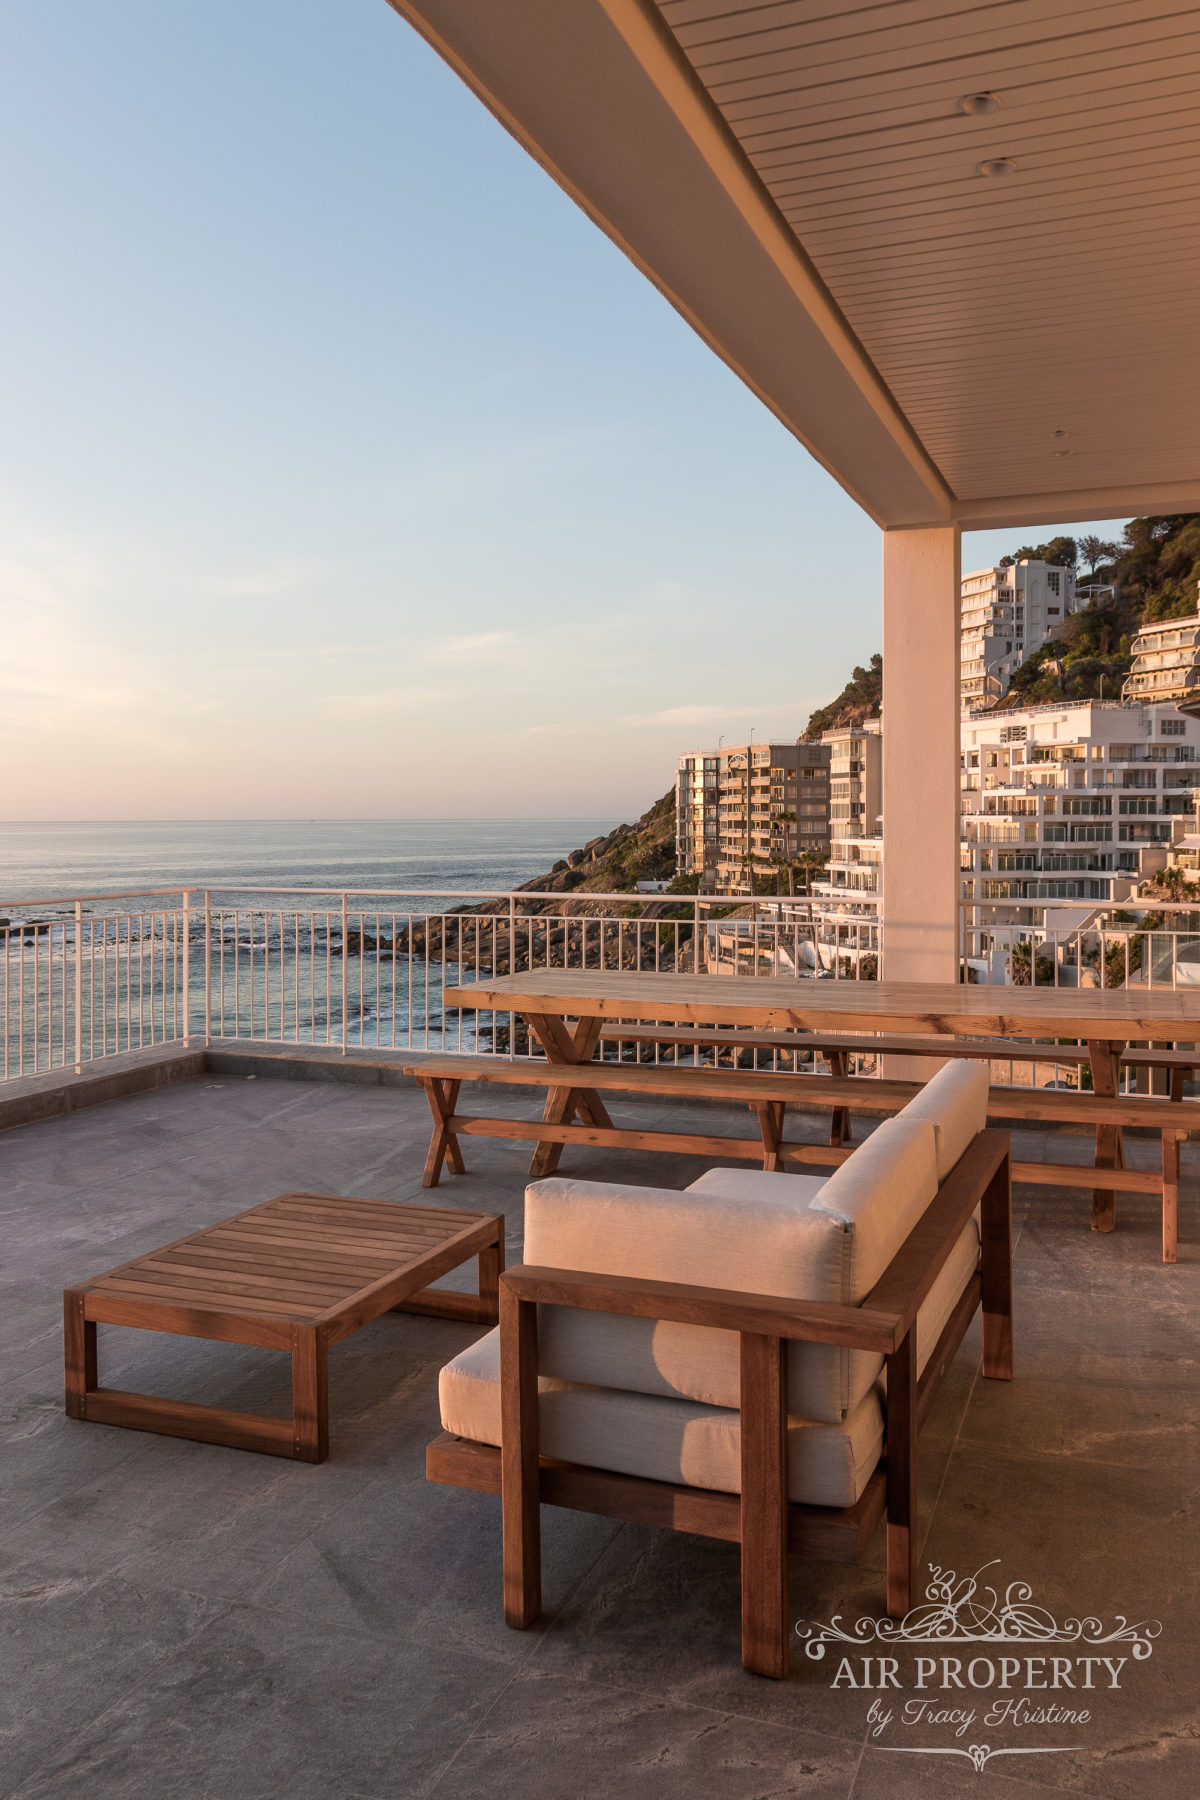 Holiday Rentals in		 						 		 	Clifton